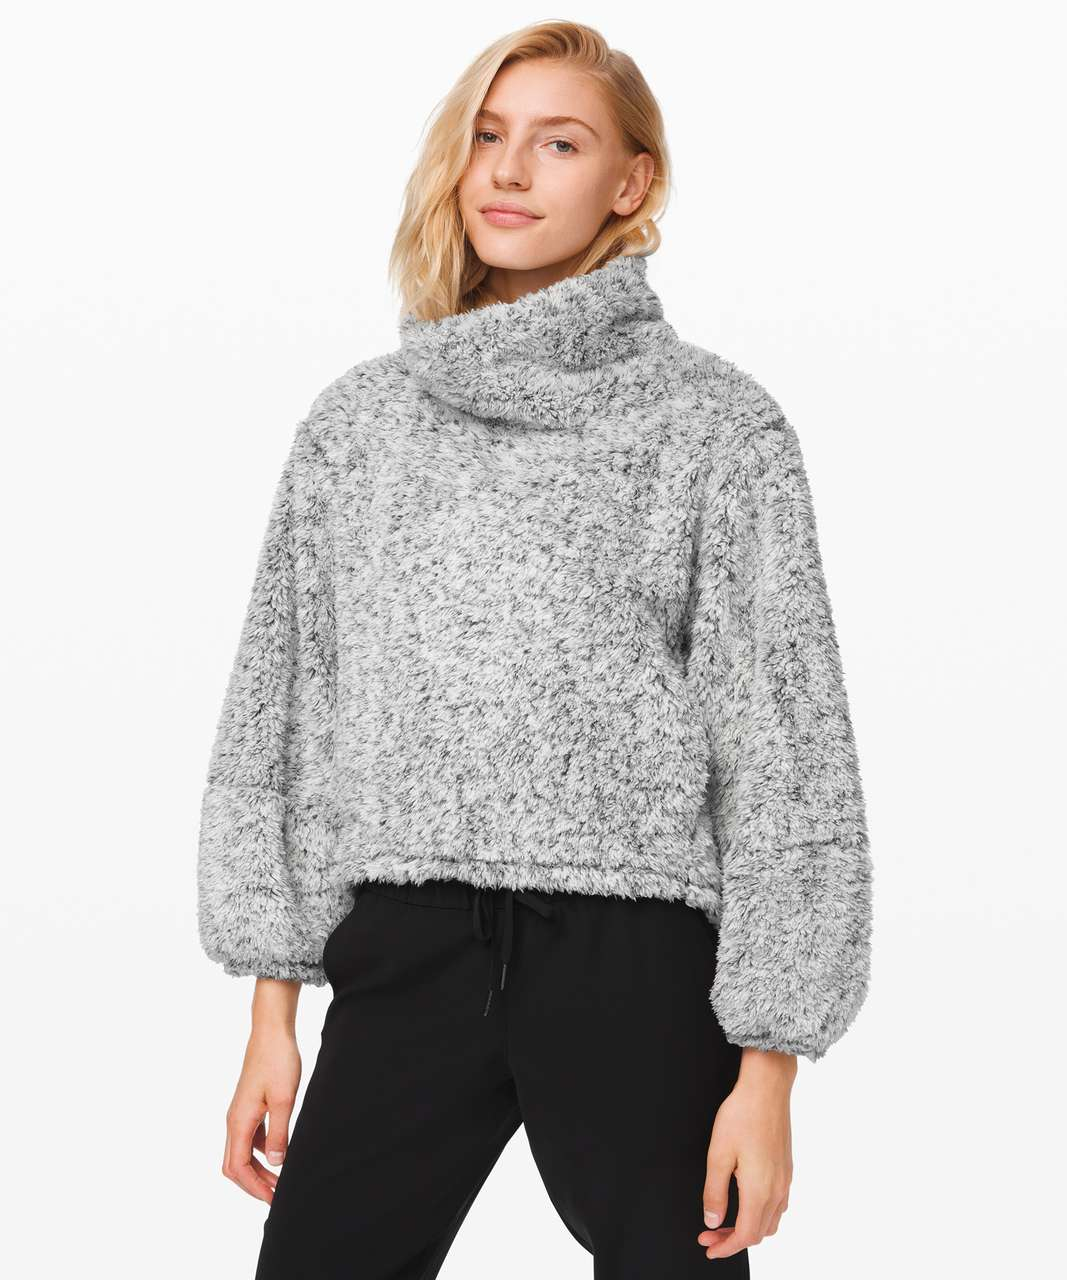 Lululemon Warmth Restore Sherpa Pullover - Heathered White